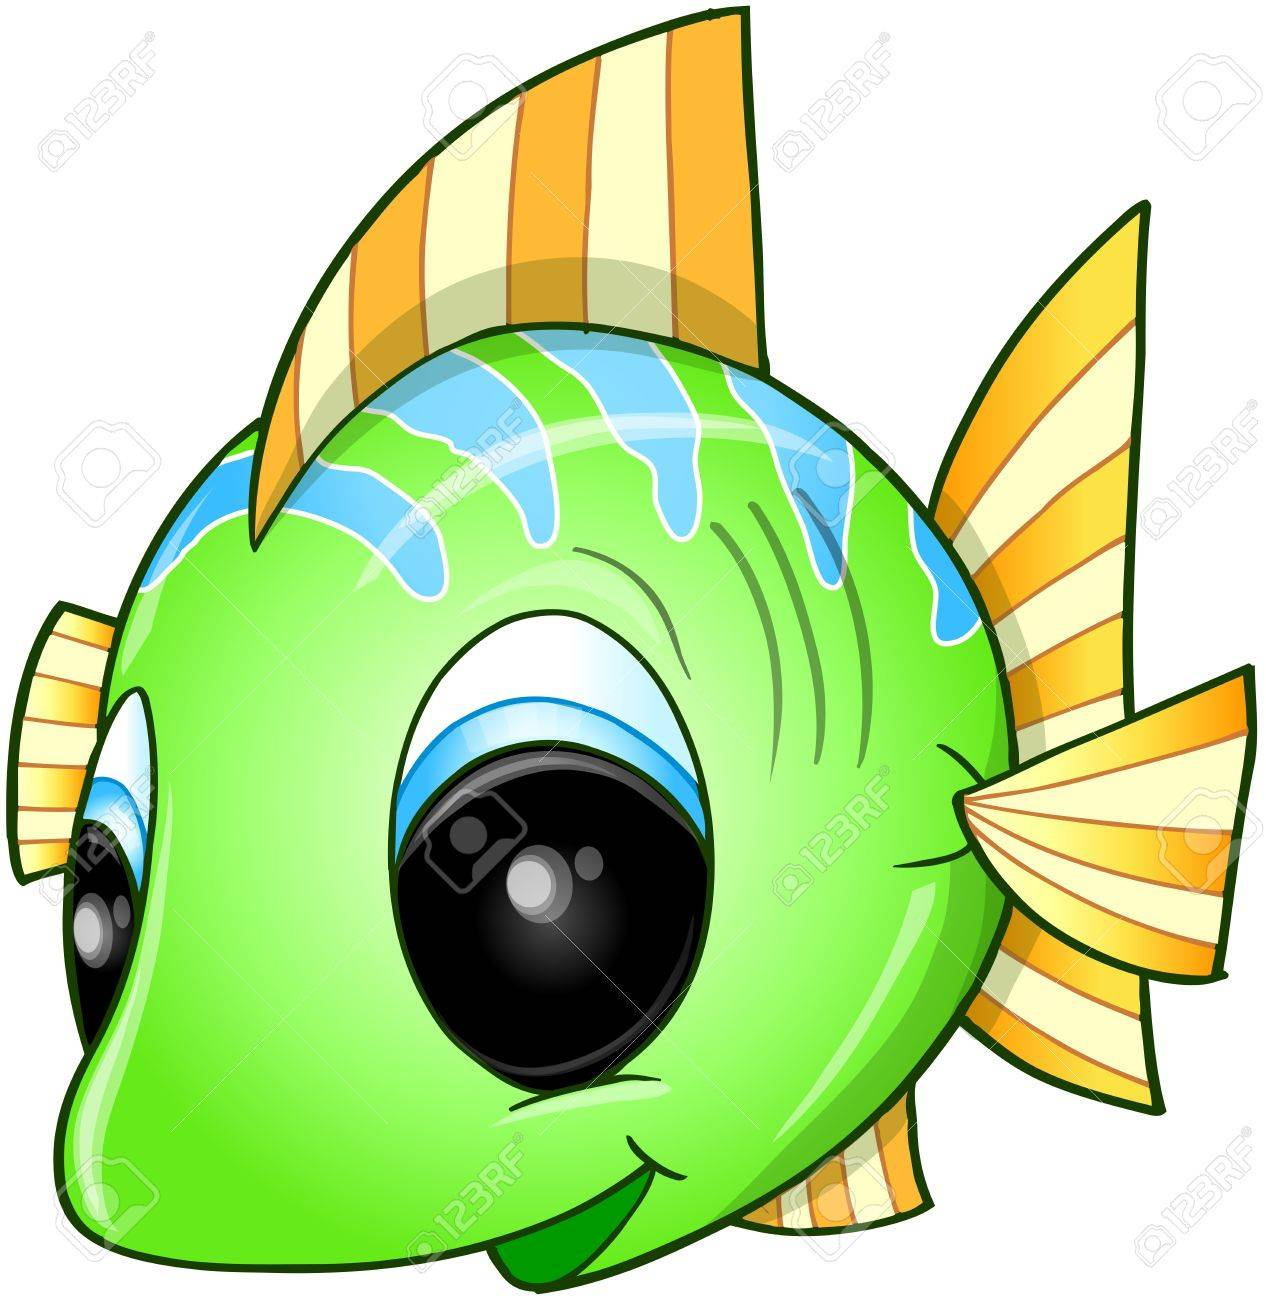 Cute Fish Vector Art Royalty Free Cliparts, Vectors, And Stock ...